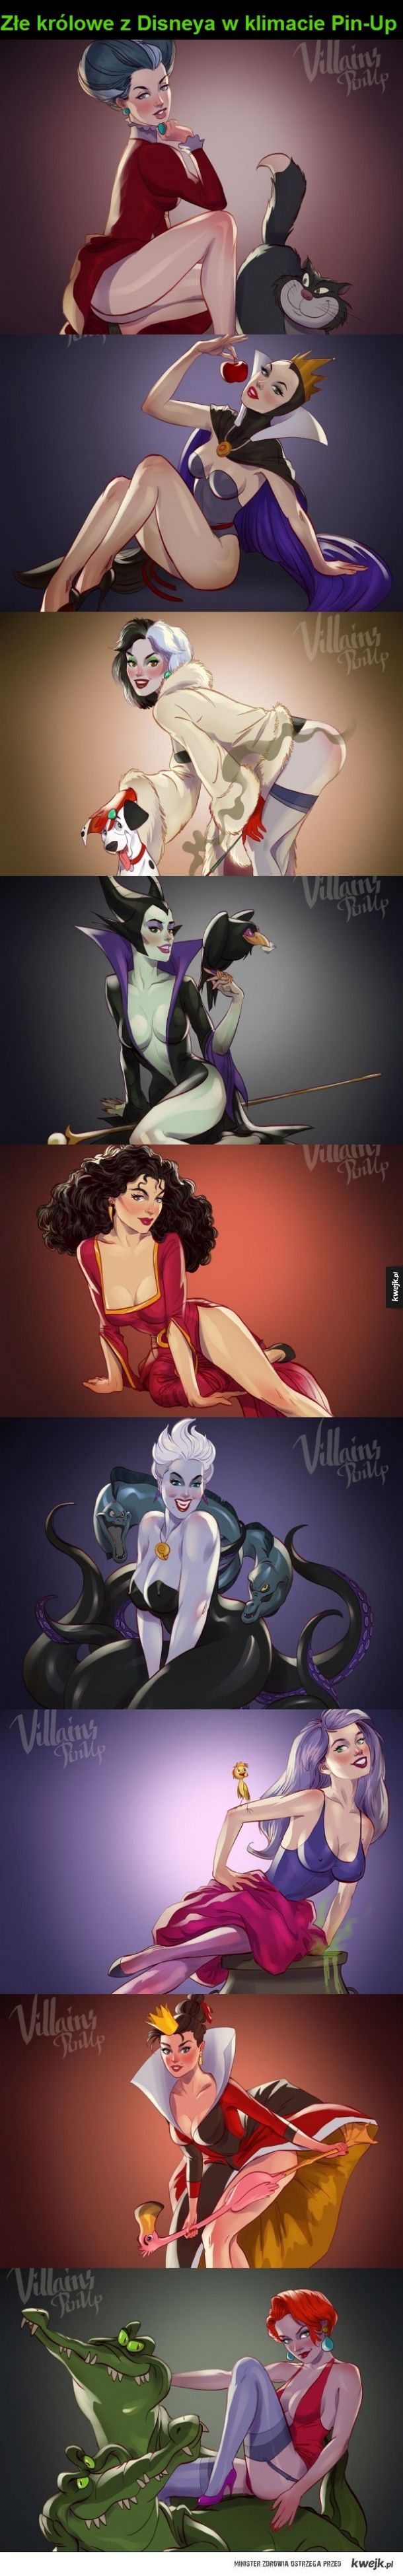 Villain Disney - Pinup version